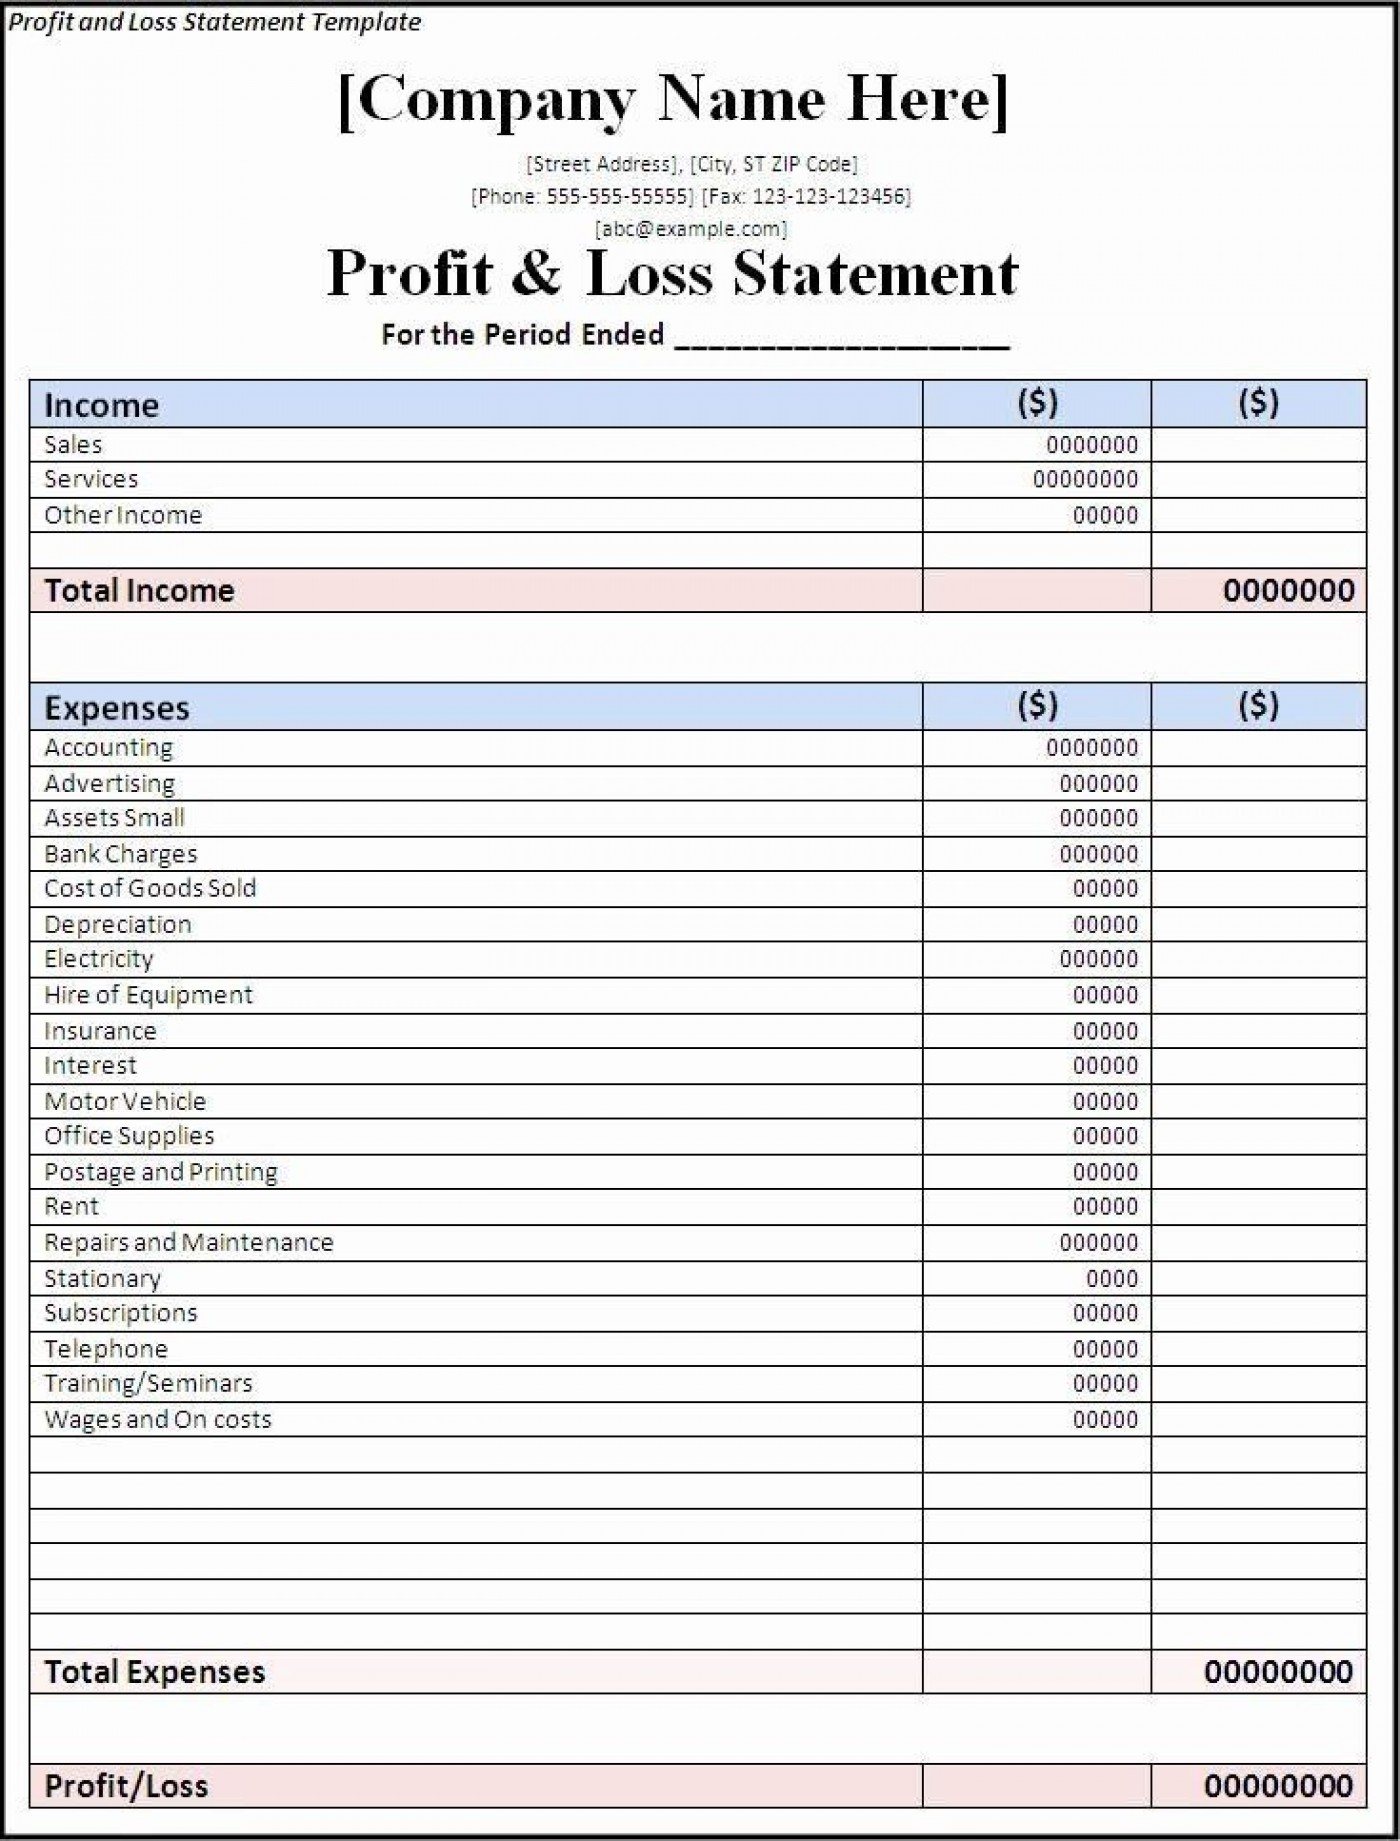 002 Wondrou Basic Profit And Los Template Image  Free Simple Form Statement Excel For Self Employed1400